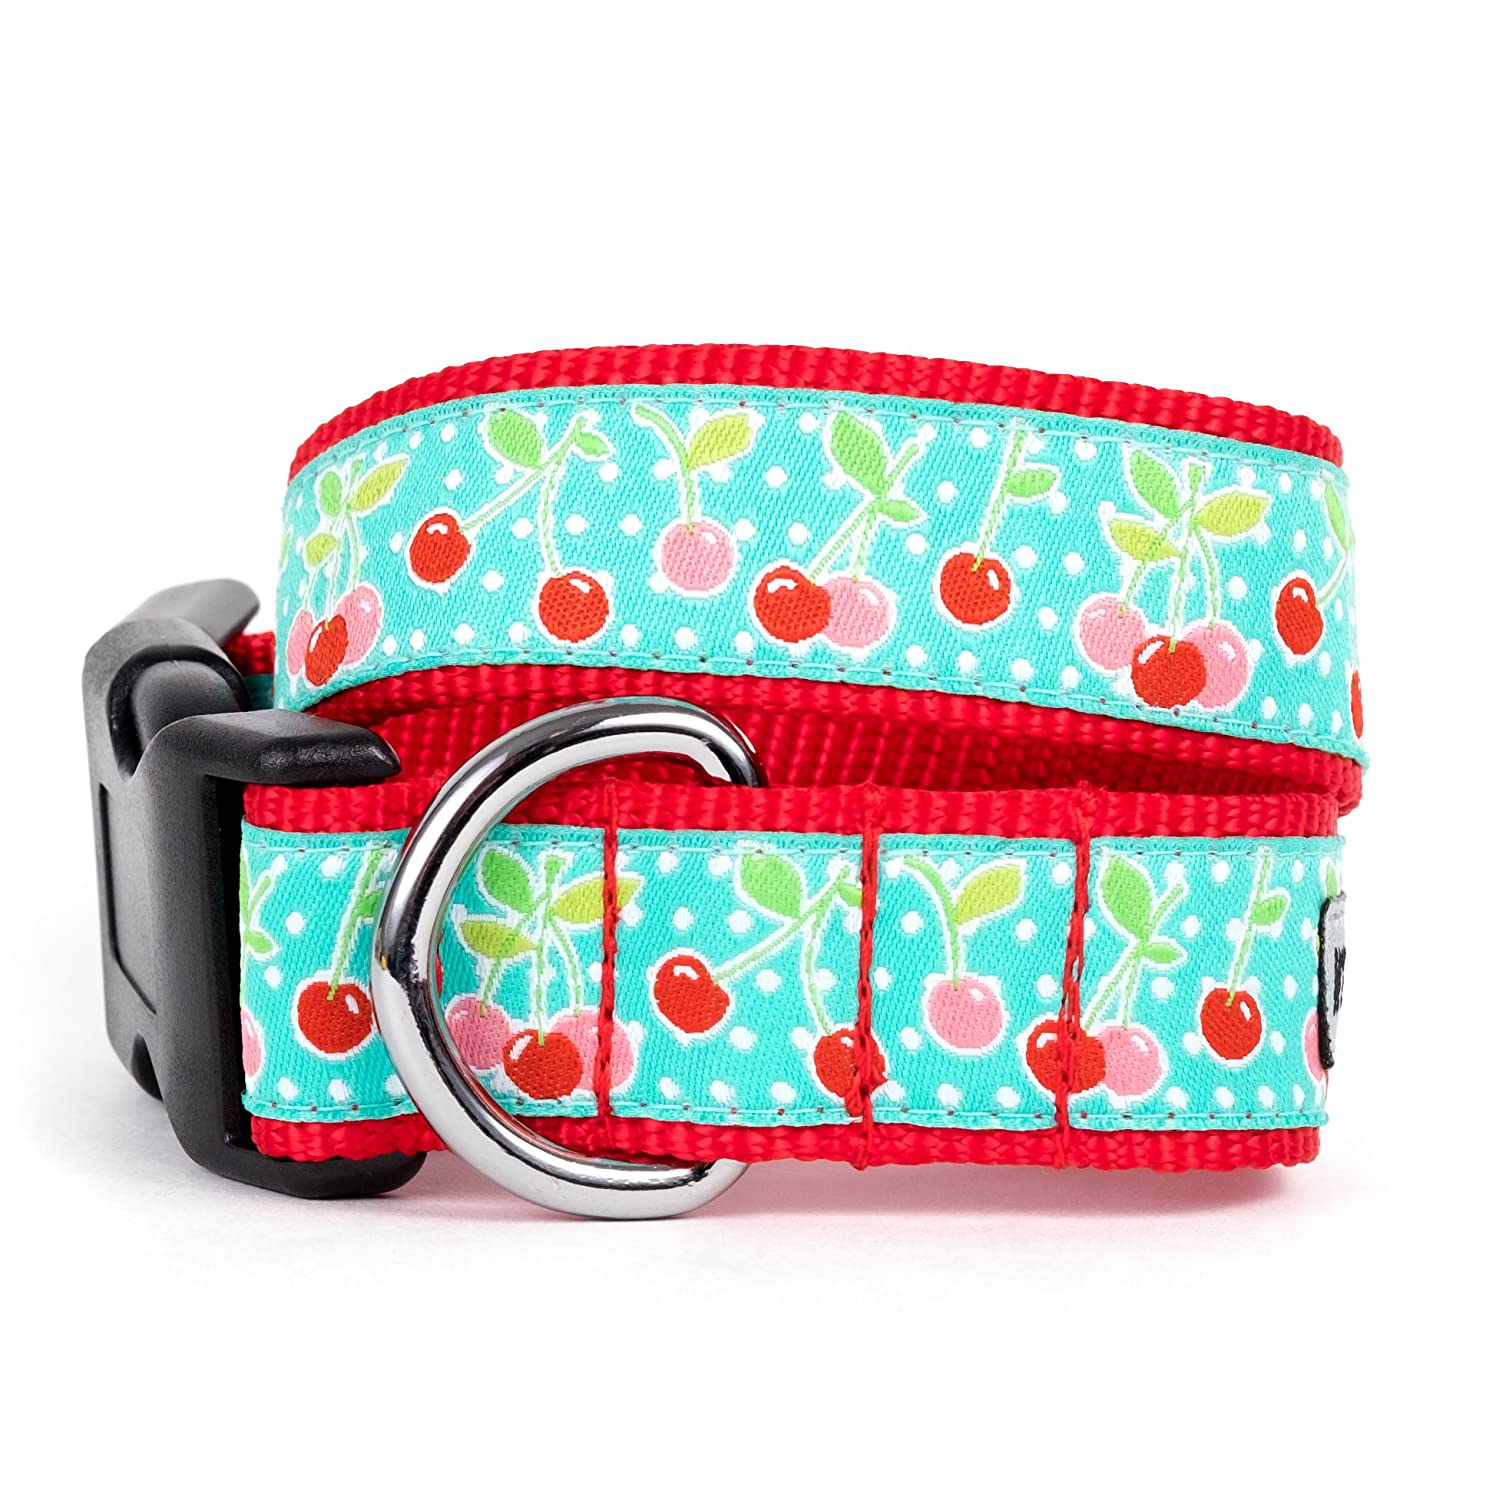 bluee, X-Small The Worthy Dog Red Cherry Pattern Adjustable Designer Pet Dog Collar, bluee, X-Small